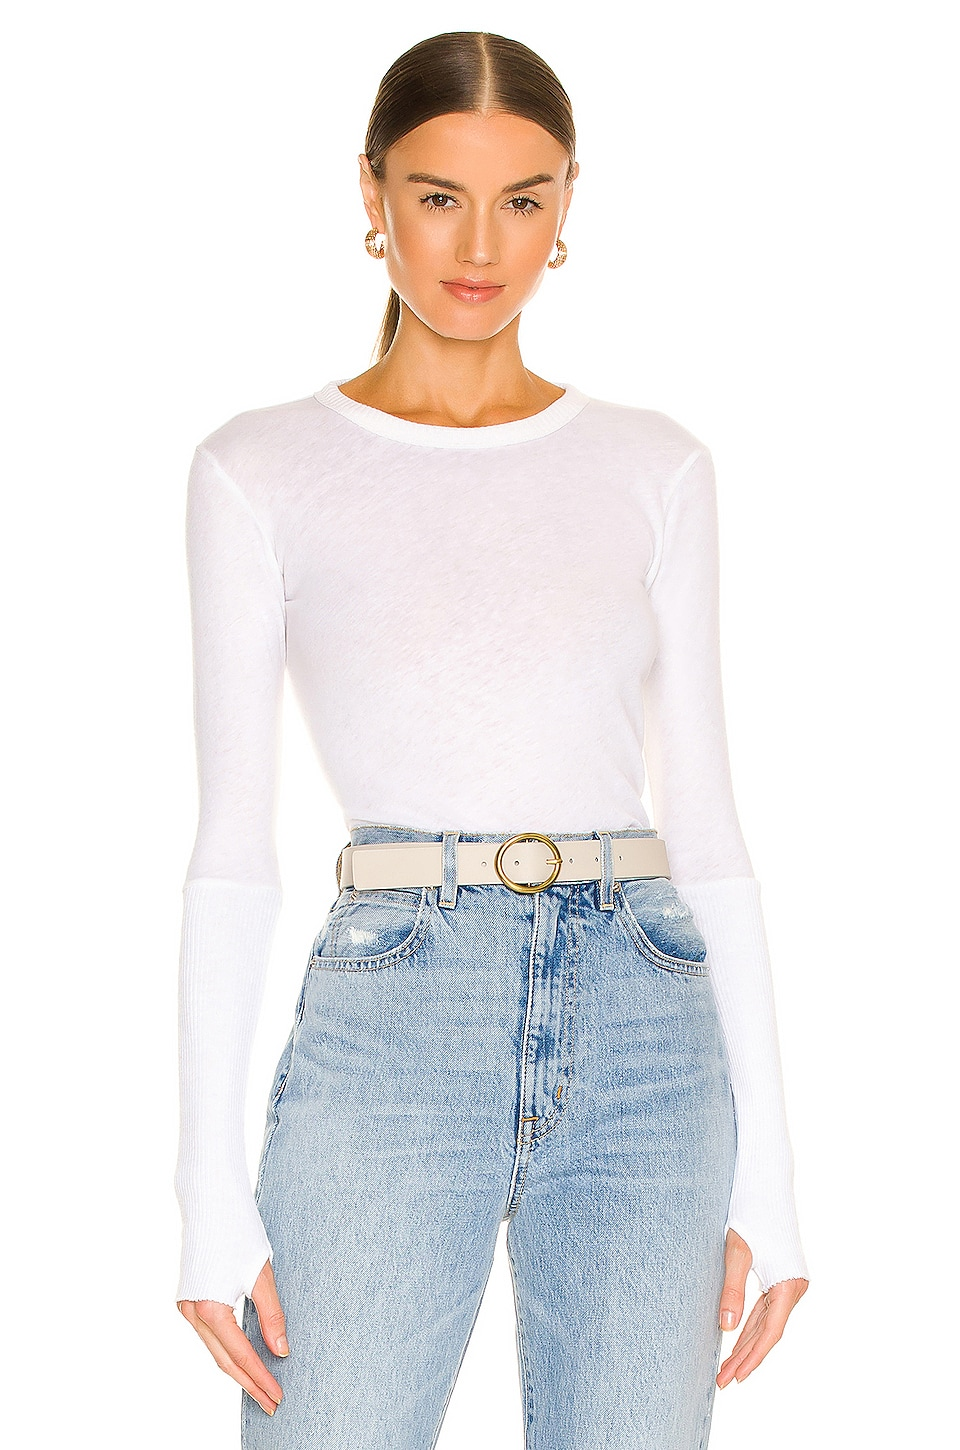 Enza Costa Cashmere Cuffed Crew Neck Top in White